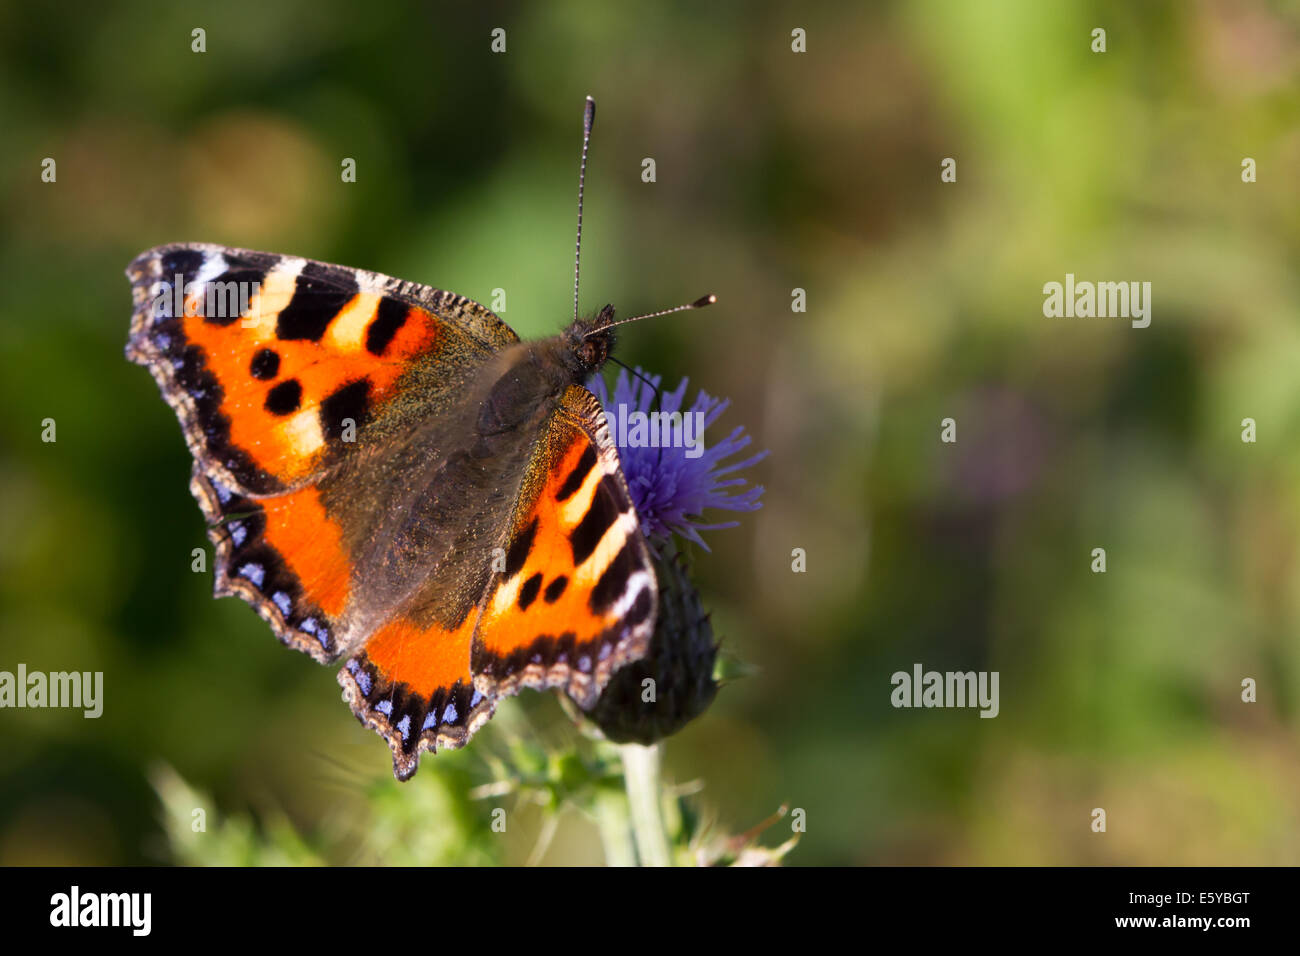 Small Tortoiseshell (Aglais urticae) feeding on a Creeping Thistle flower - Stock Image